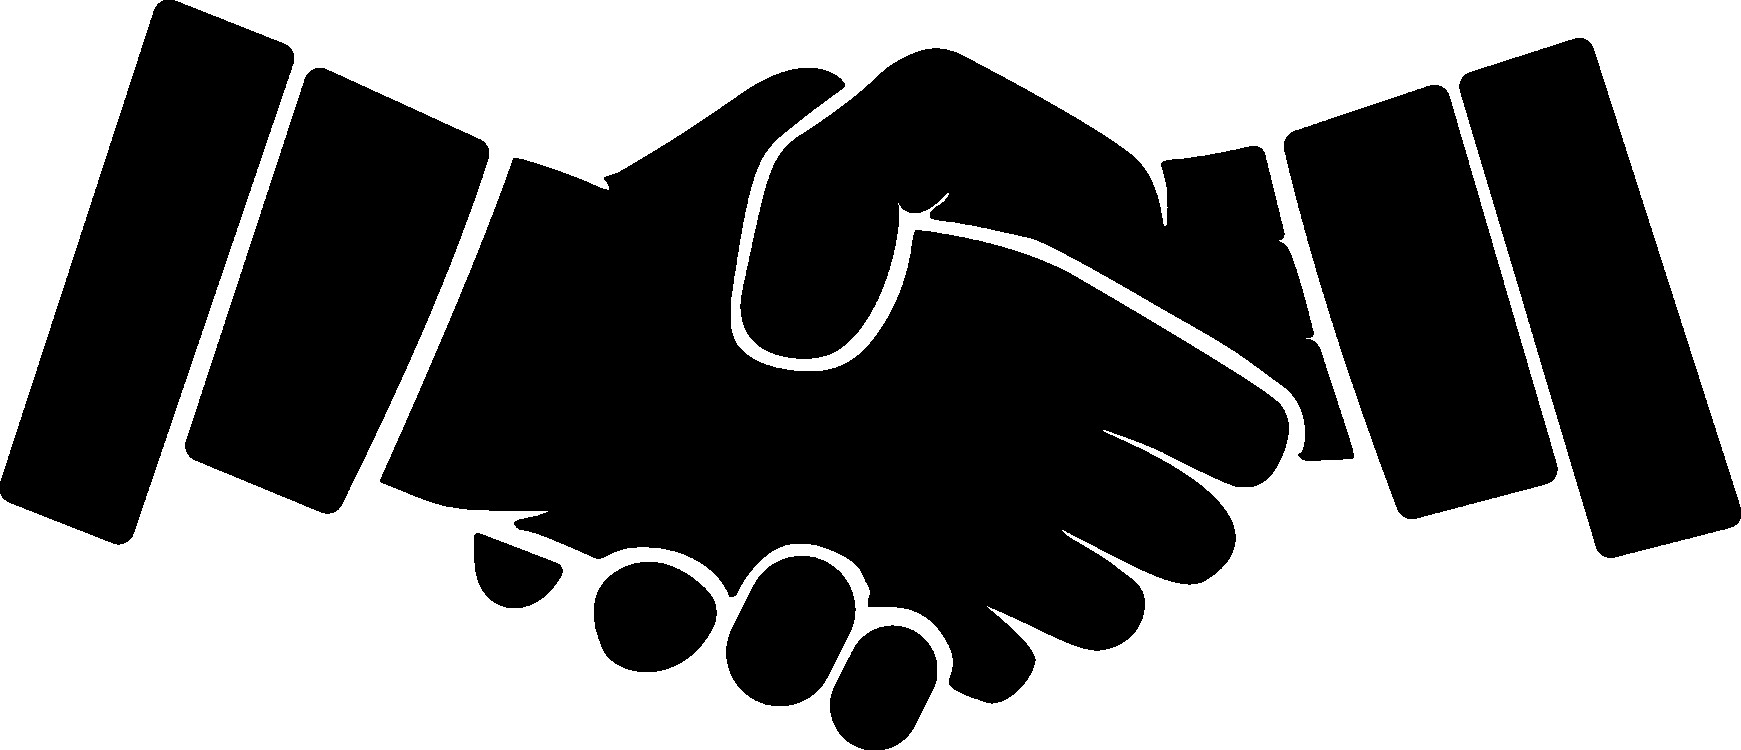 Handshake clipart silhouette.  sketch of business